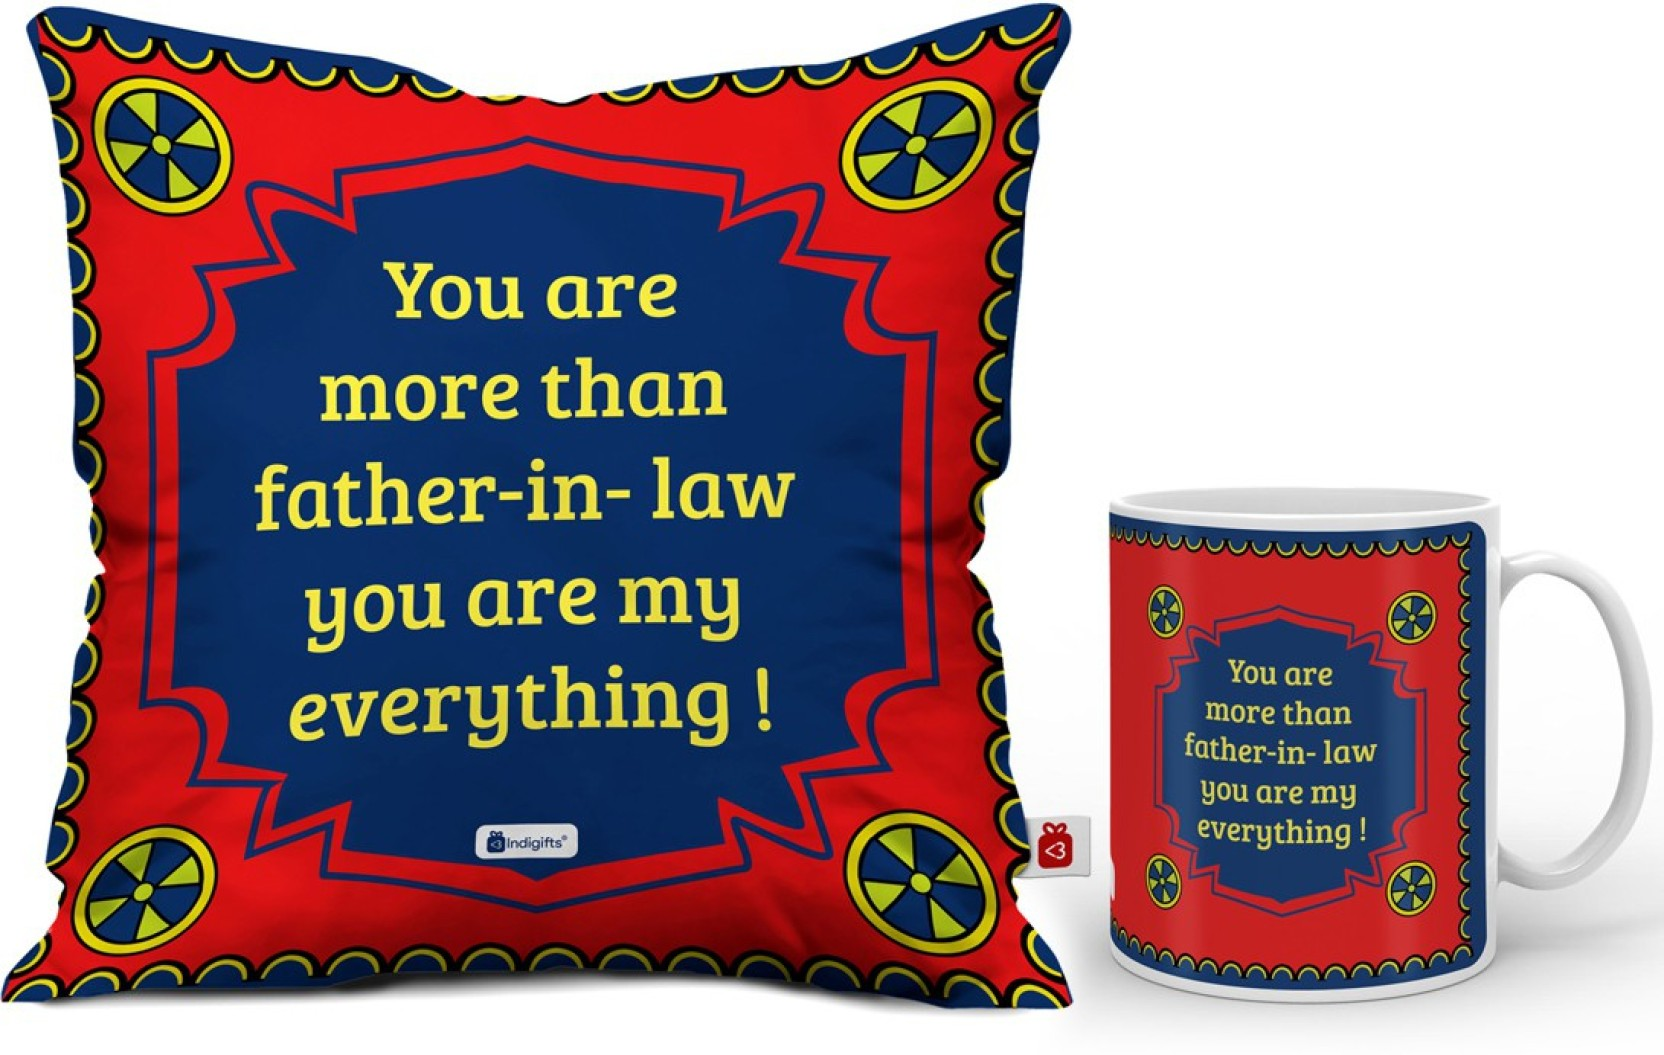 Indigifts Gift For Father In Law Fathers Birthday Dad Mug